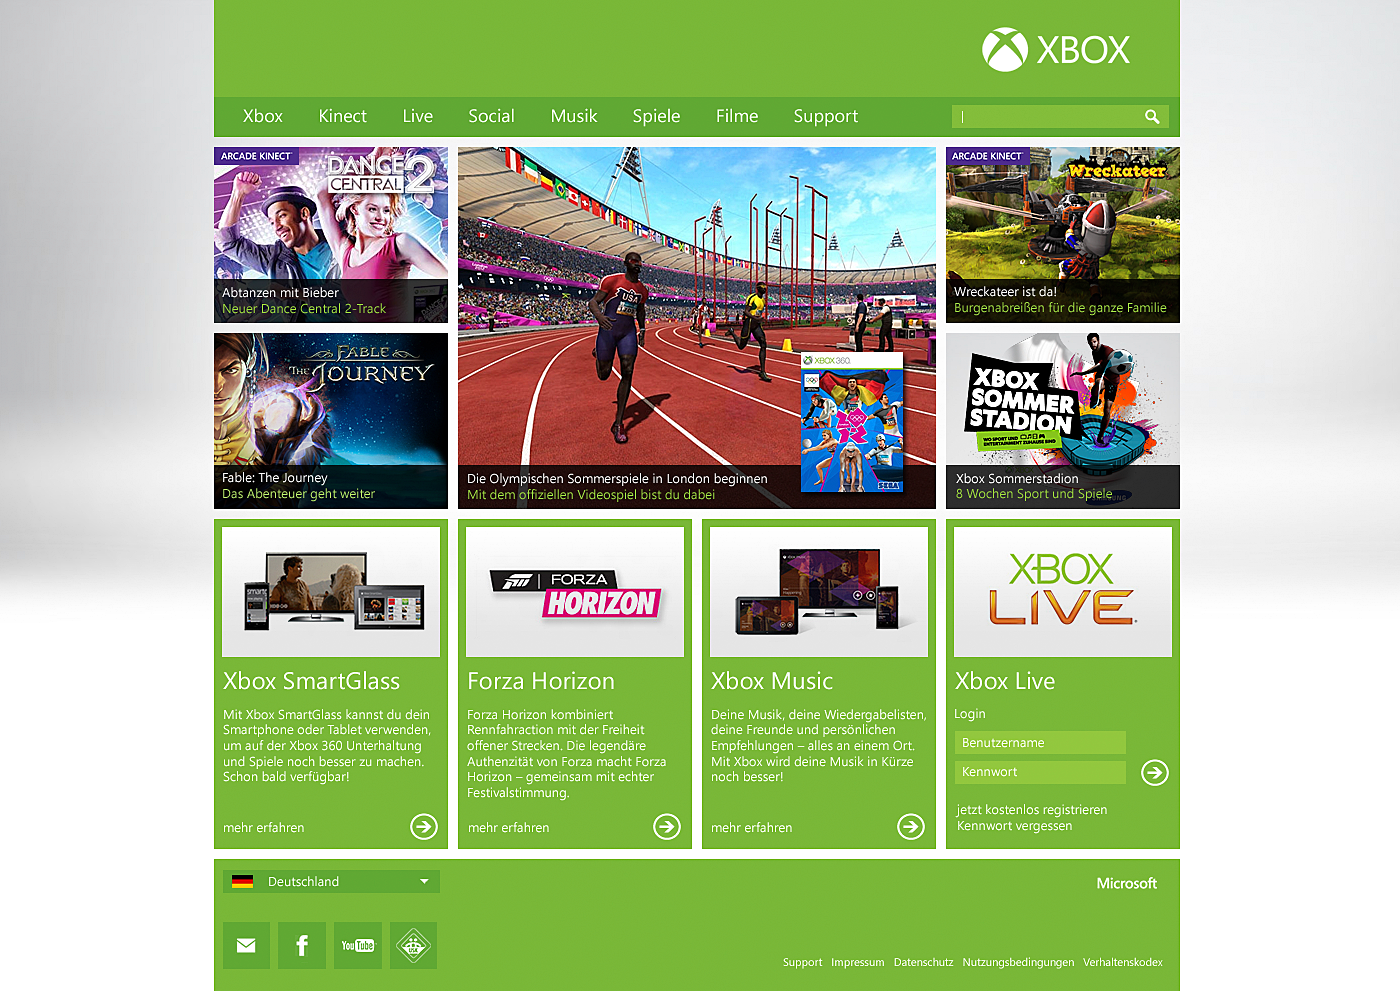 xbox-com-startpage-concept-3.png